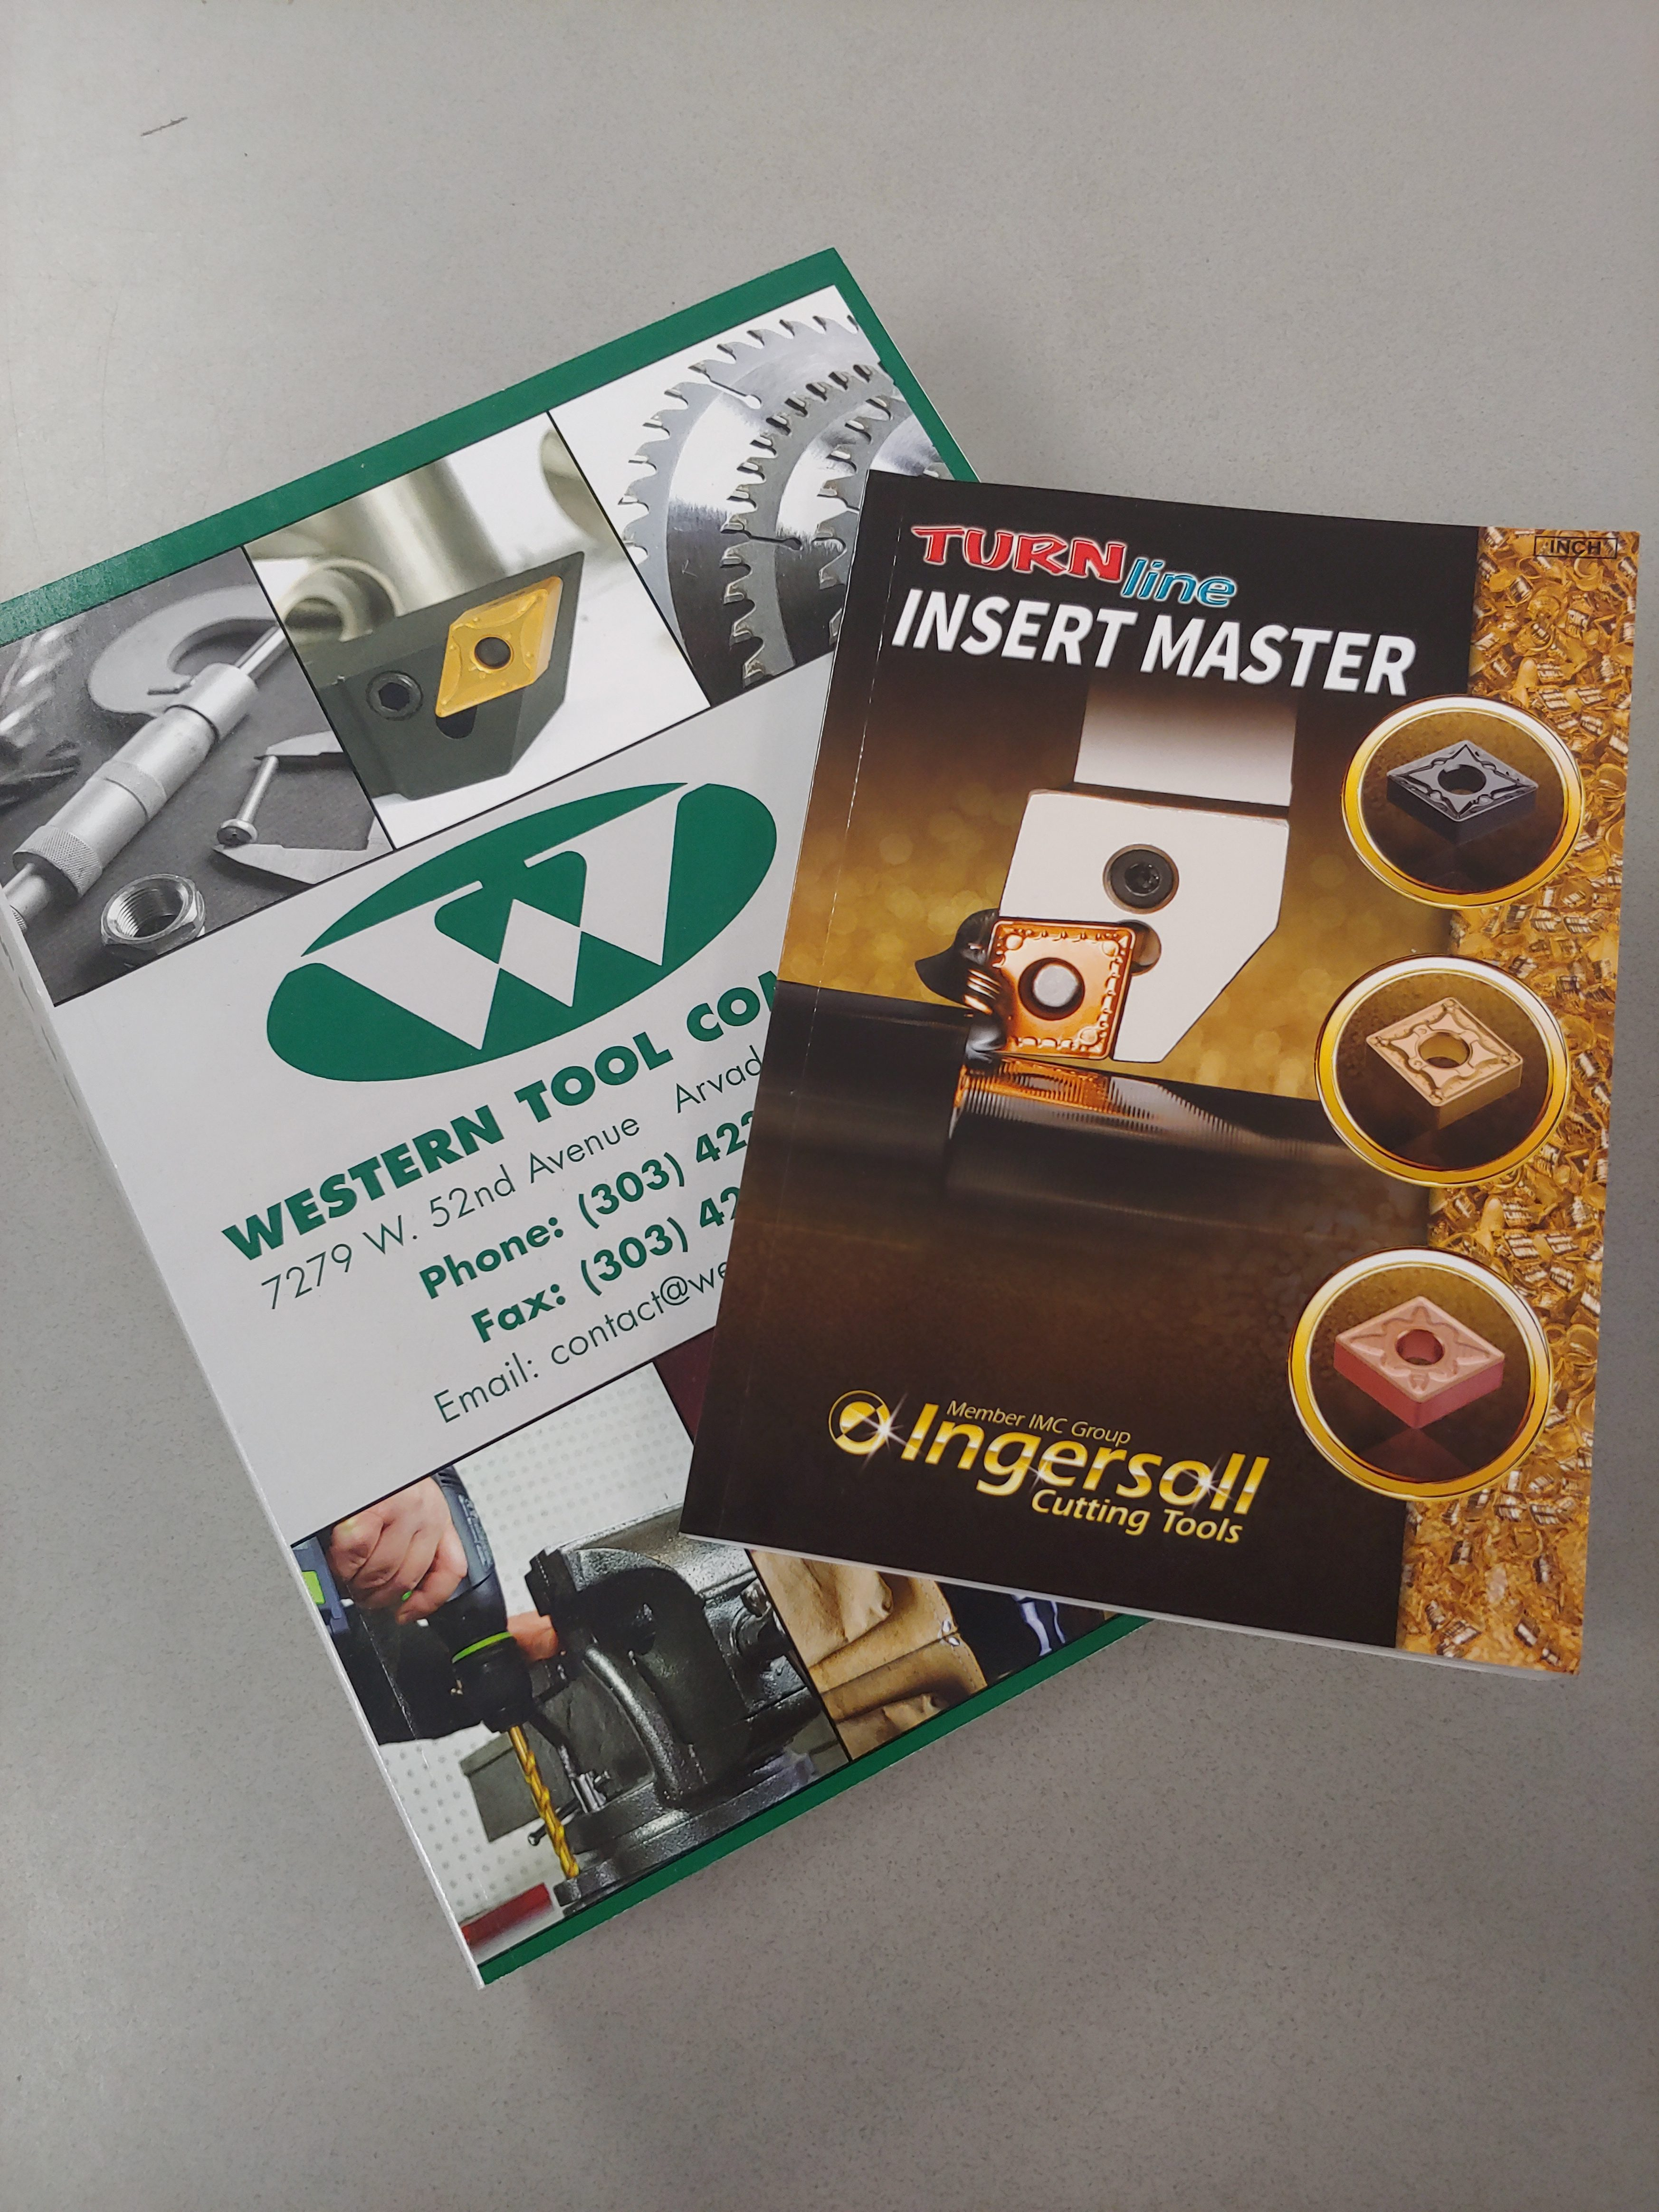 Ingersoll Cutting Tools : New Line for Western Tool Company